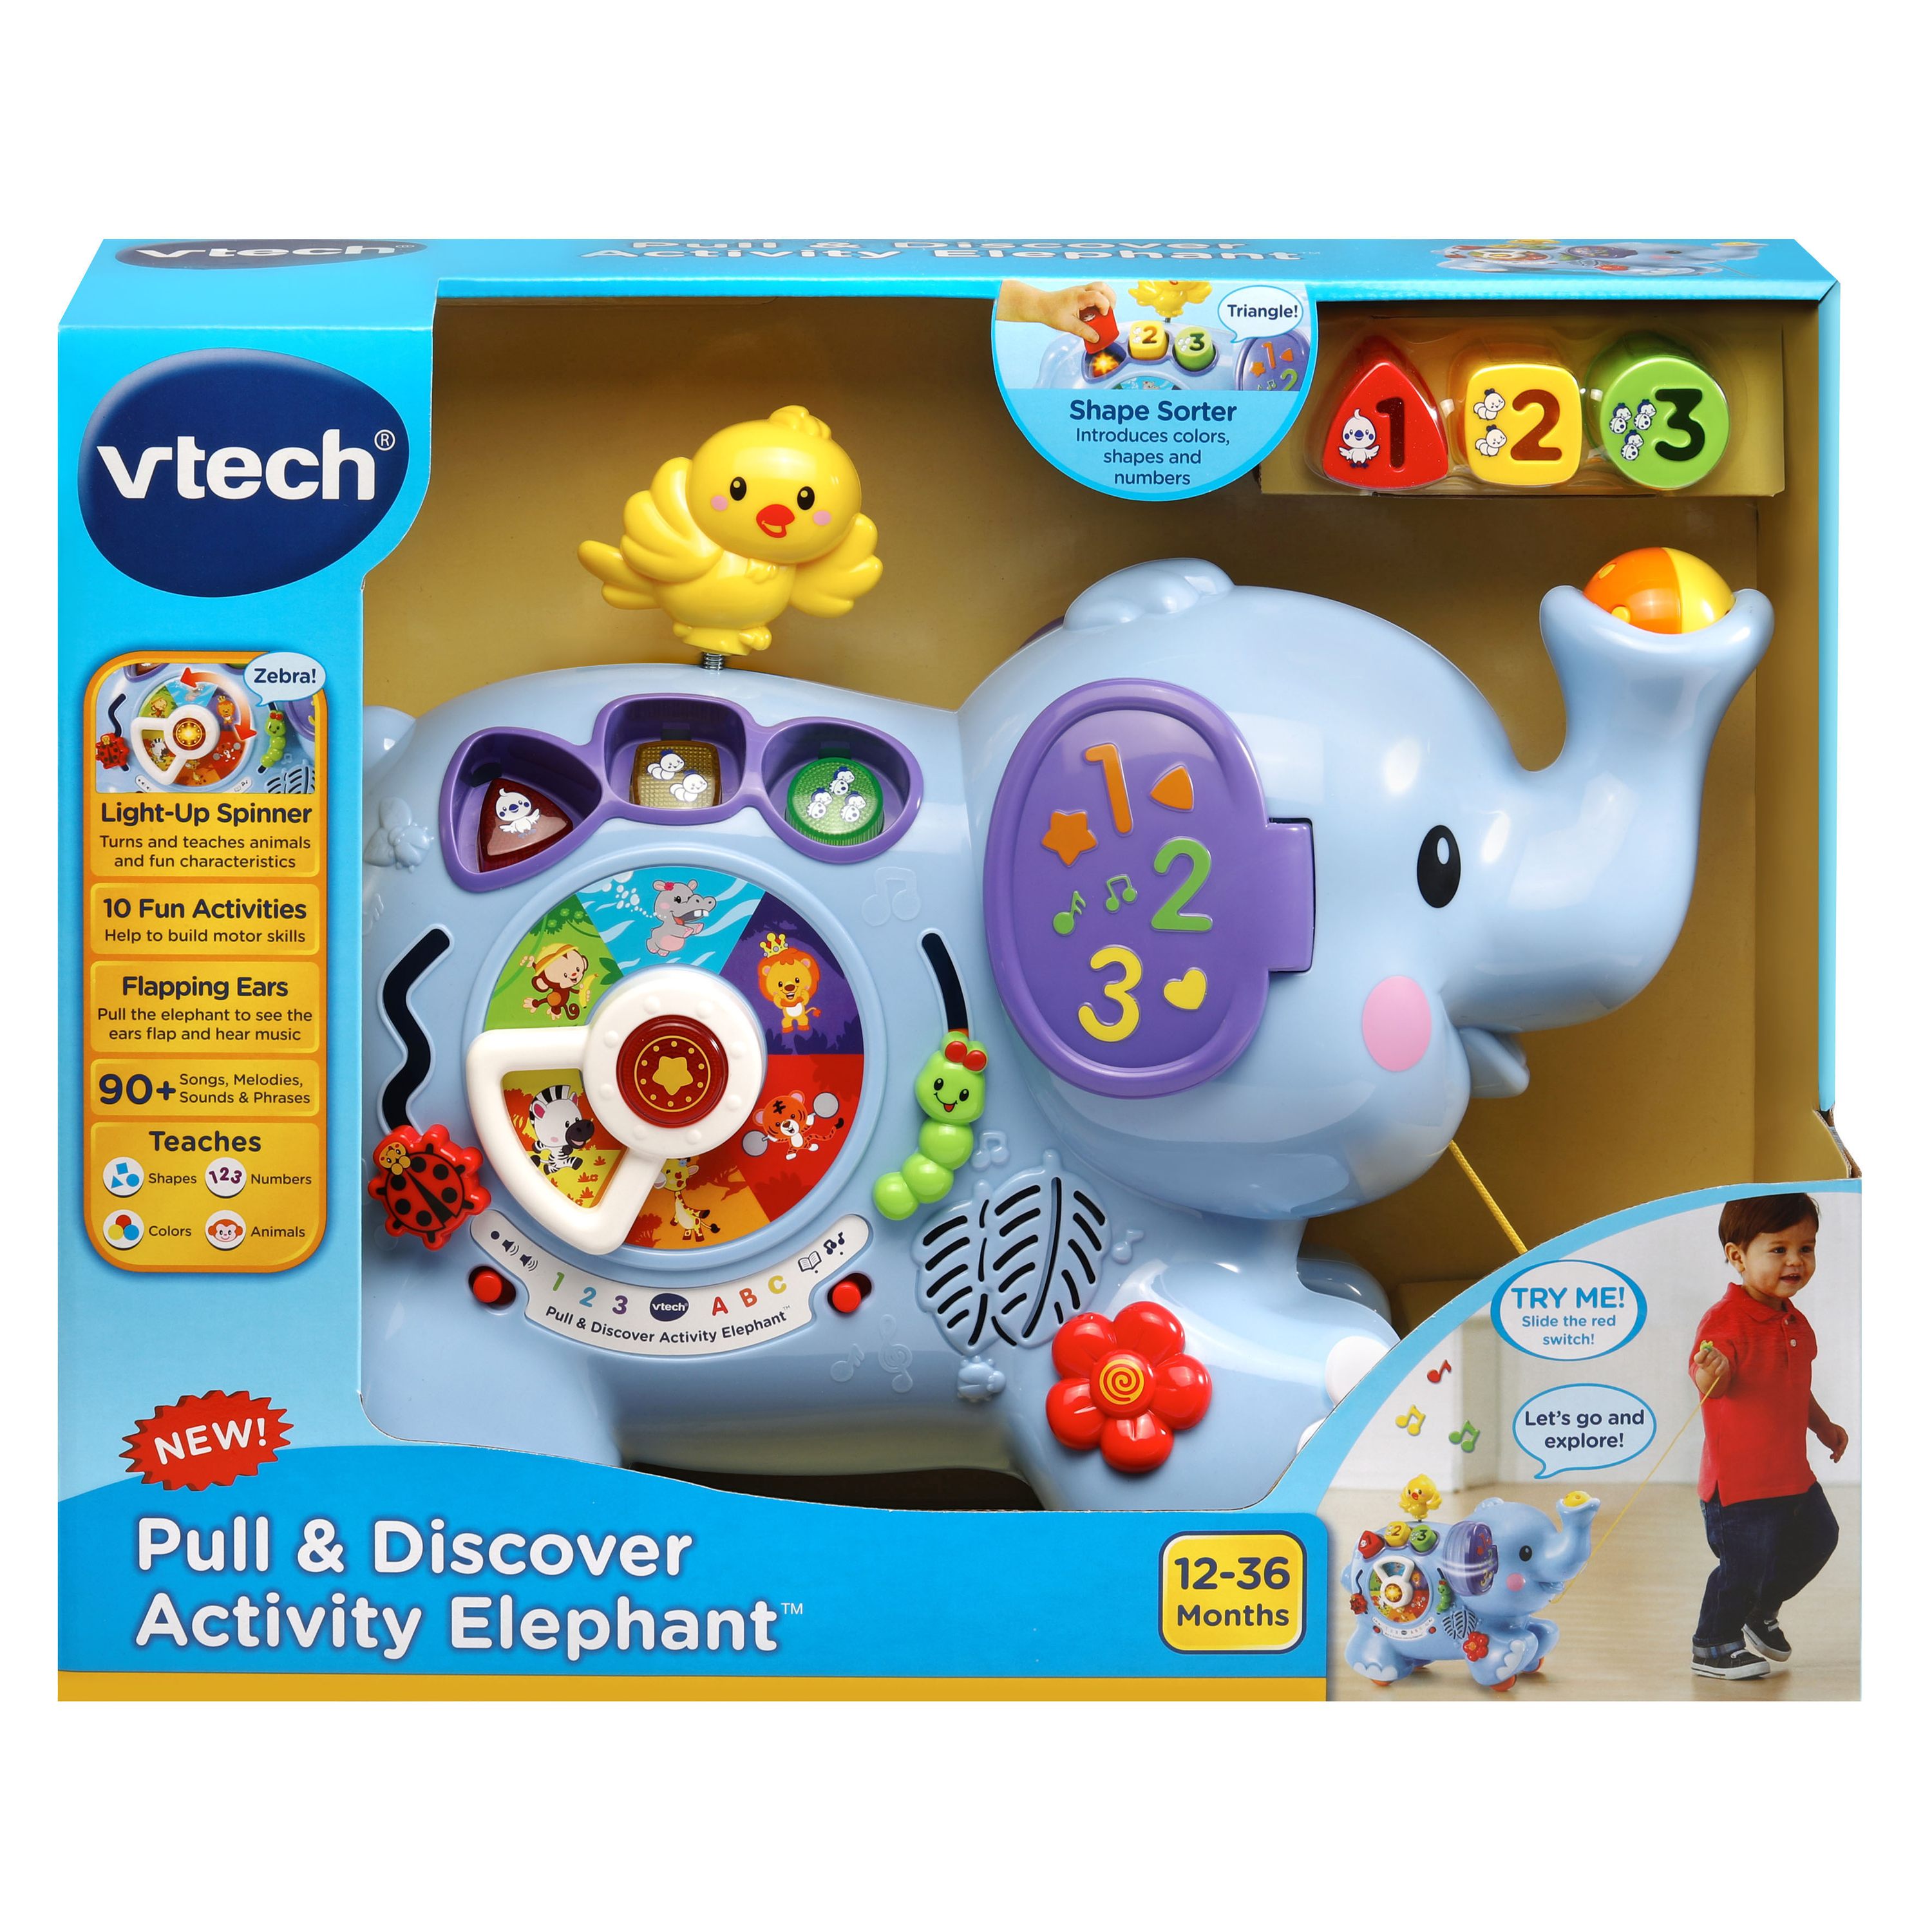 VTech Pull & Discover Activity Elephant™ Walmart